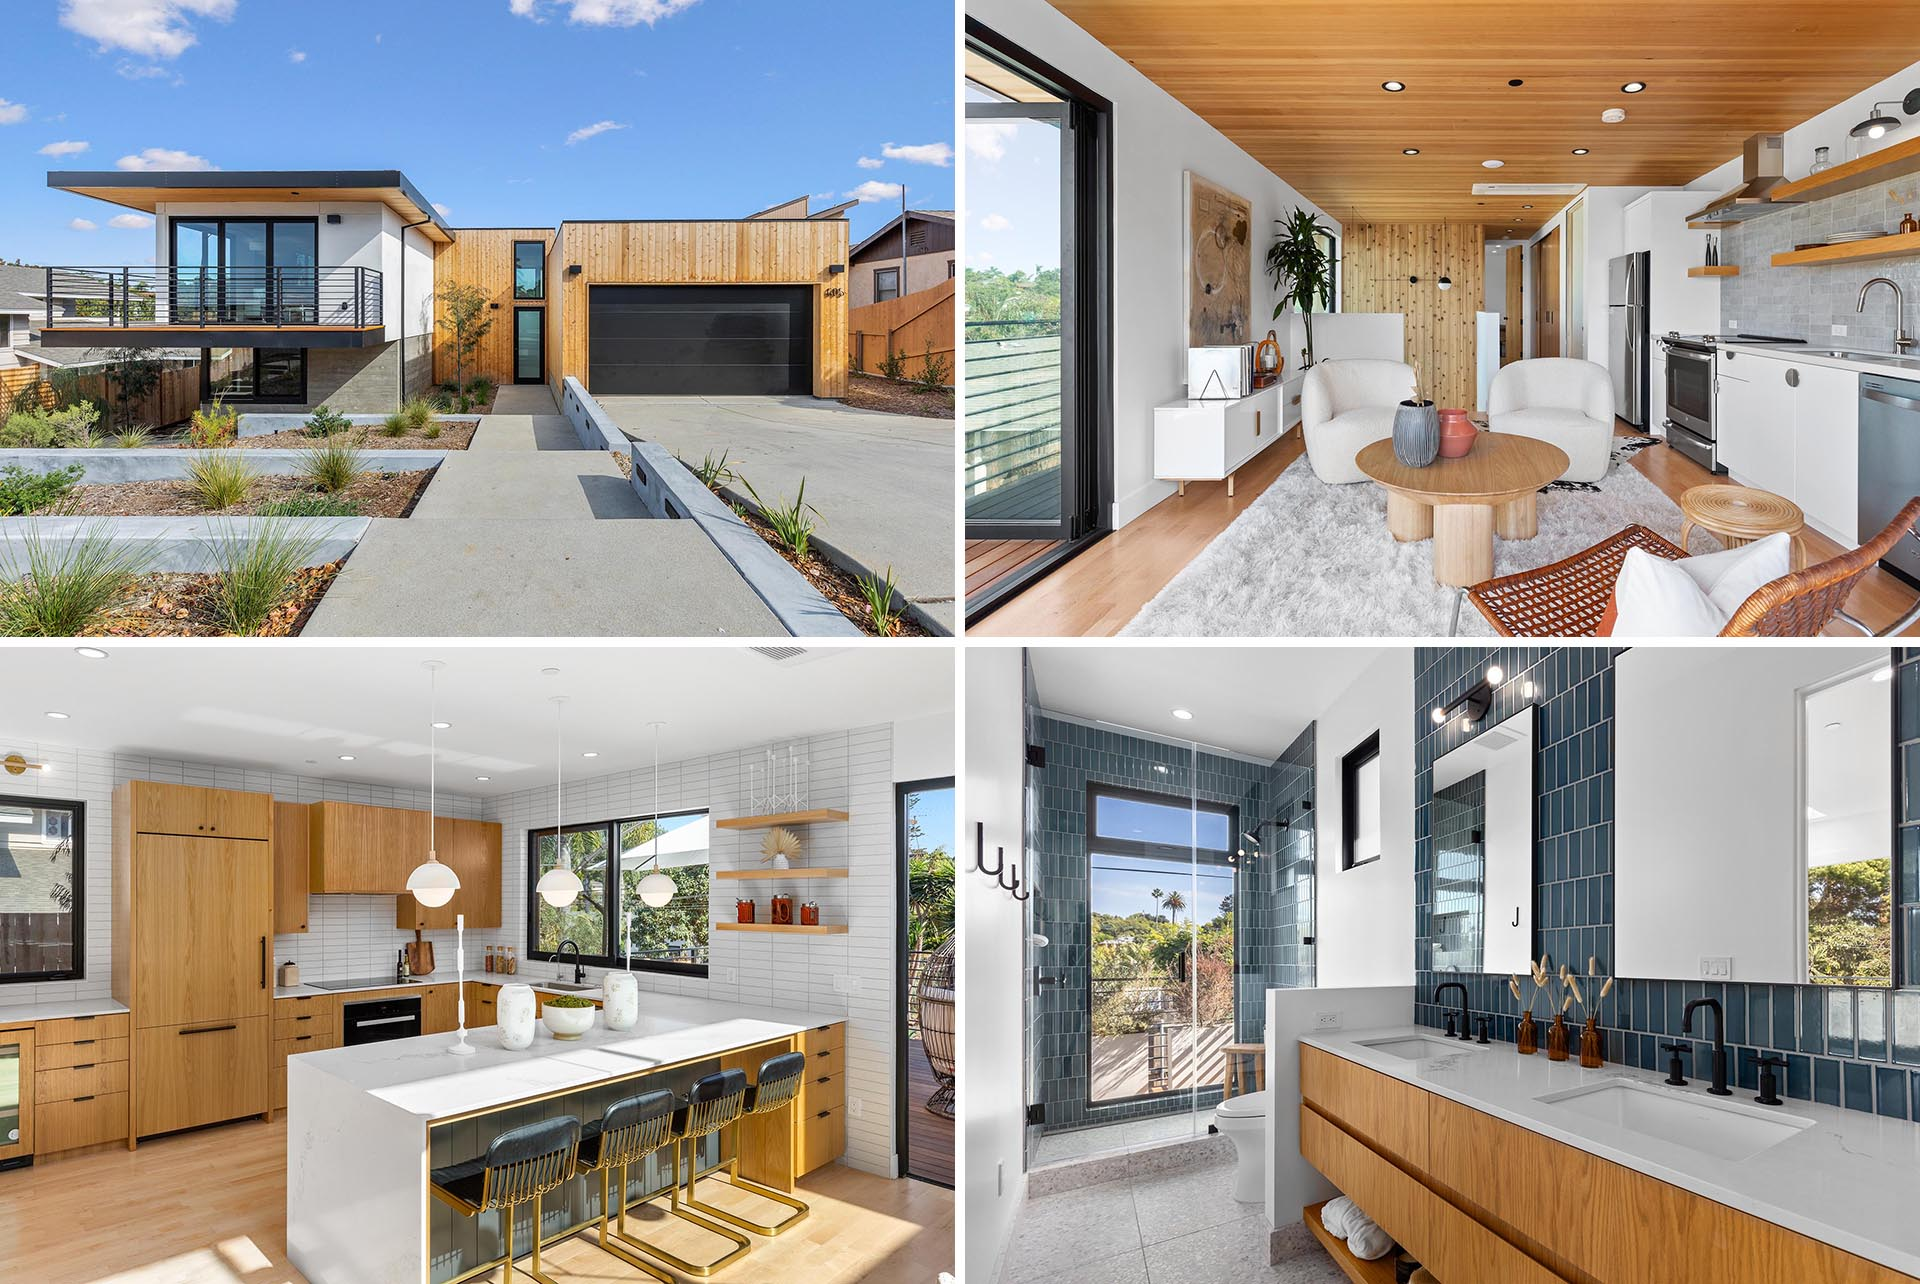 A modern home with an accessory dwelling unit for visiting relatives.